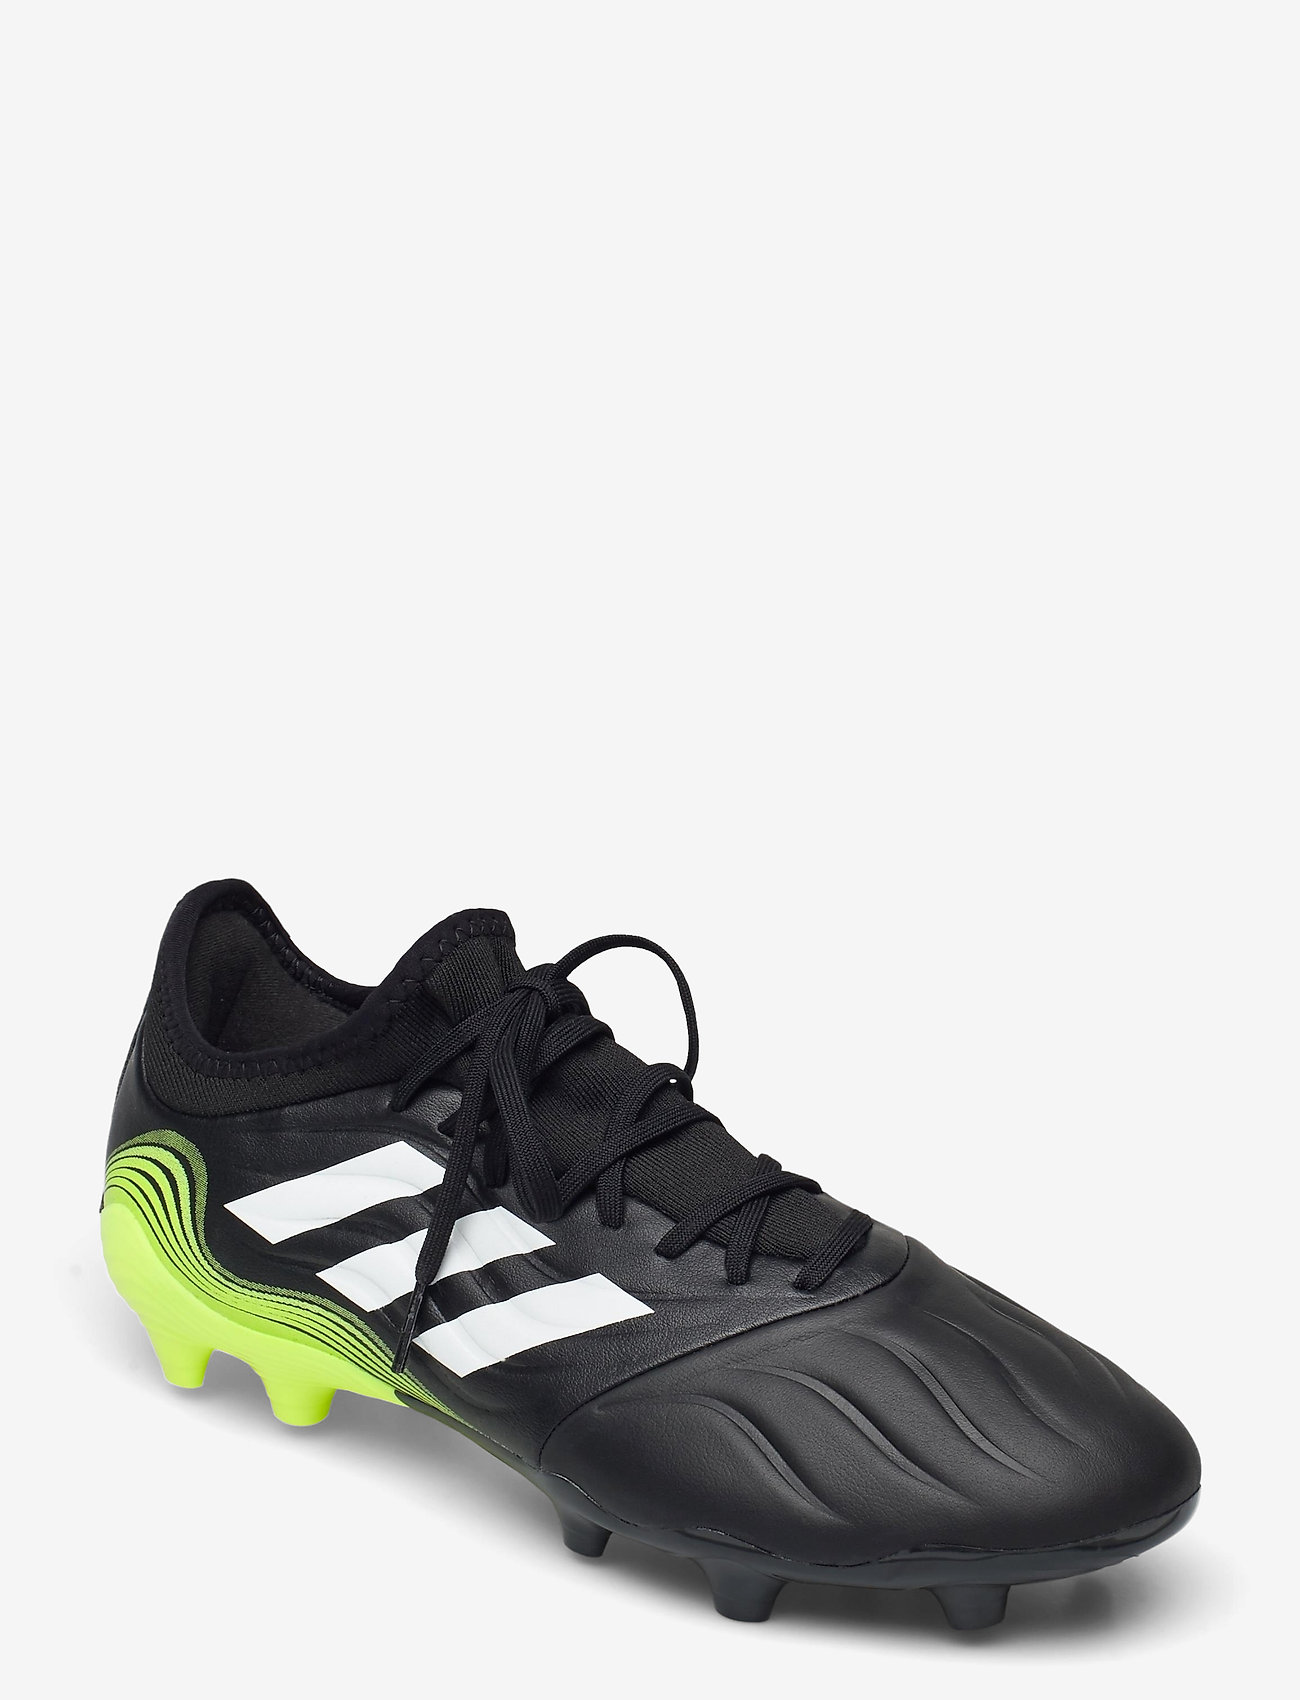 adidas Performance - Copa Sense.3 Firm Ground Boots - fodboldsko - cblack/ftwwht/syello - 0